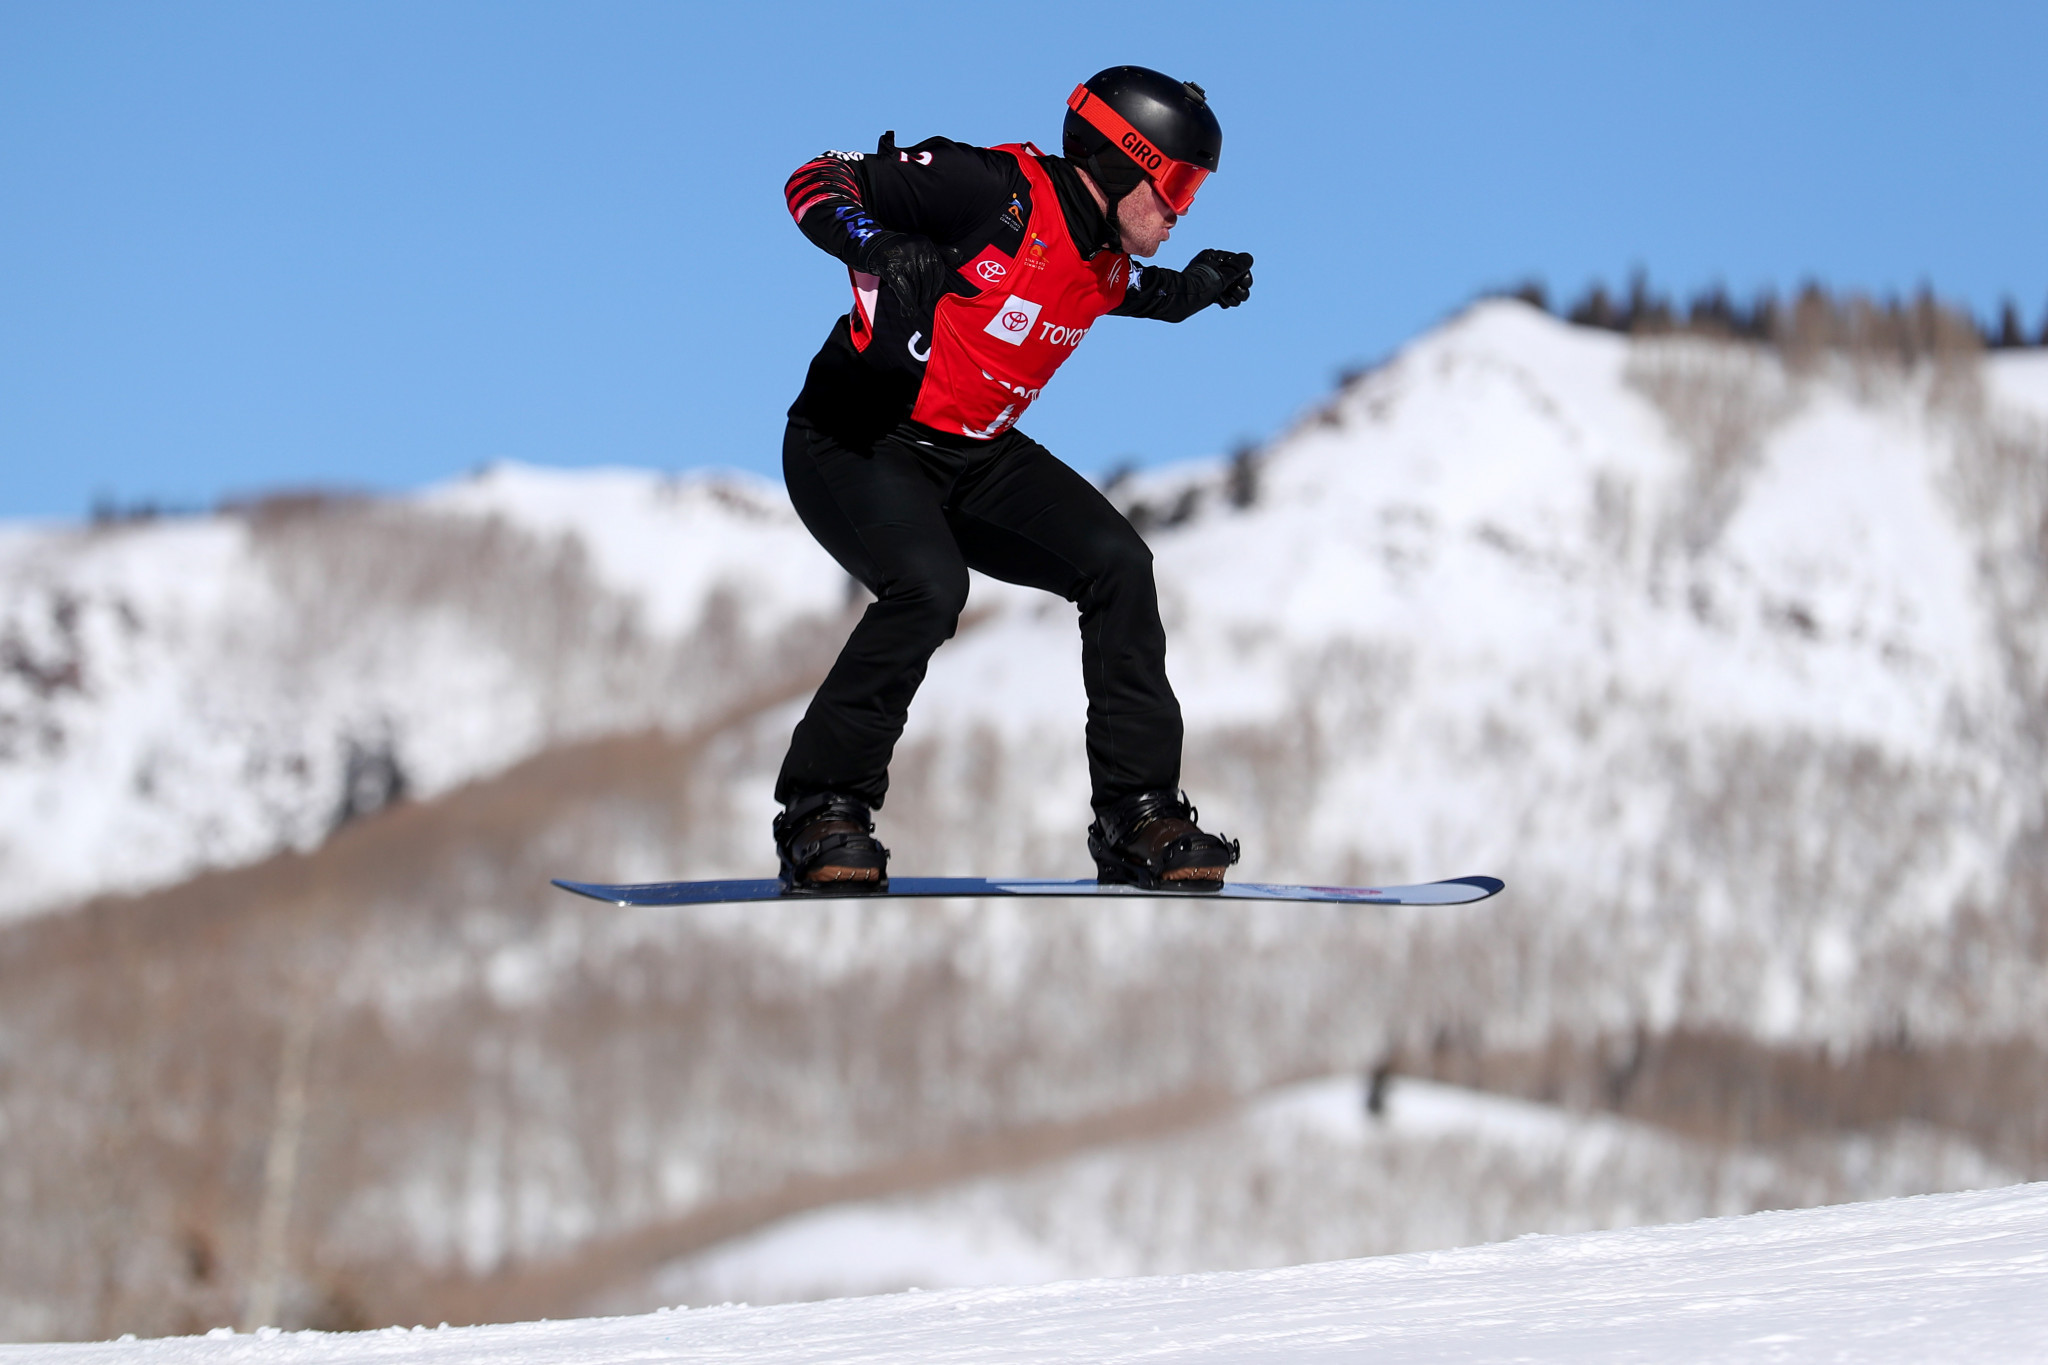 Snowboarder Dierdorff claims two prizes in USOC's Best of February awards